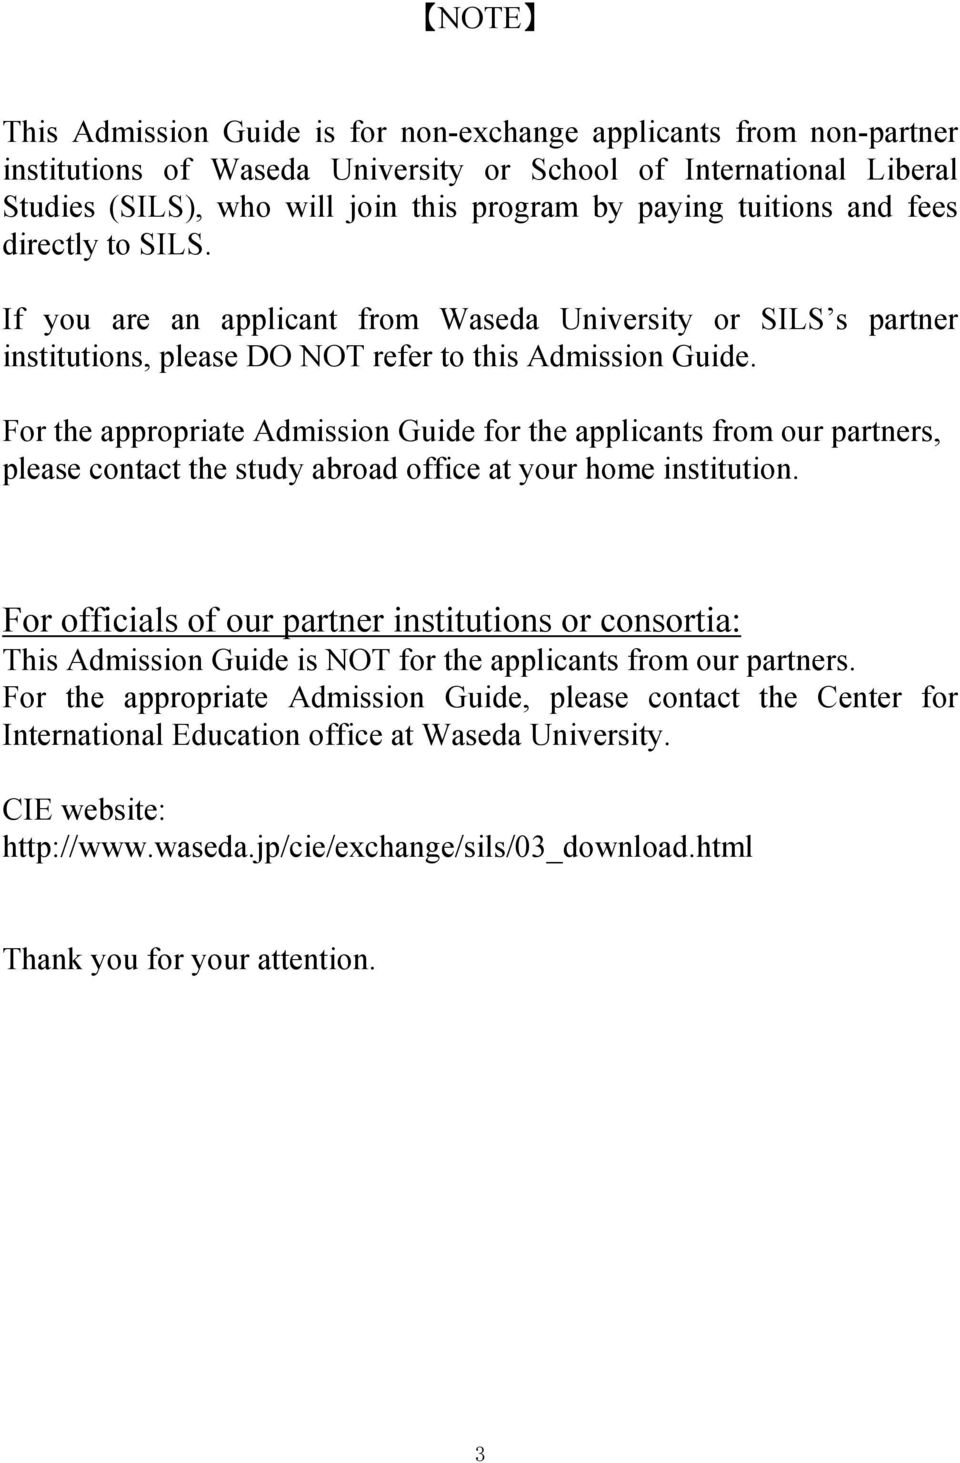 waseda sils application essay